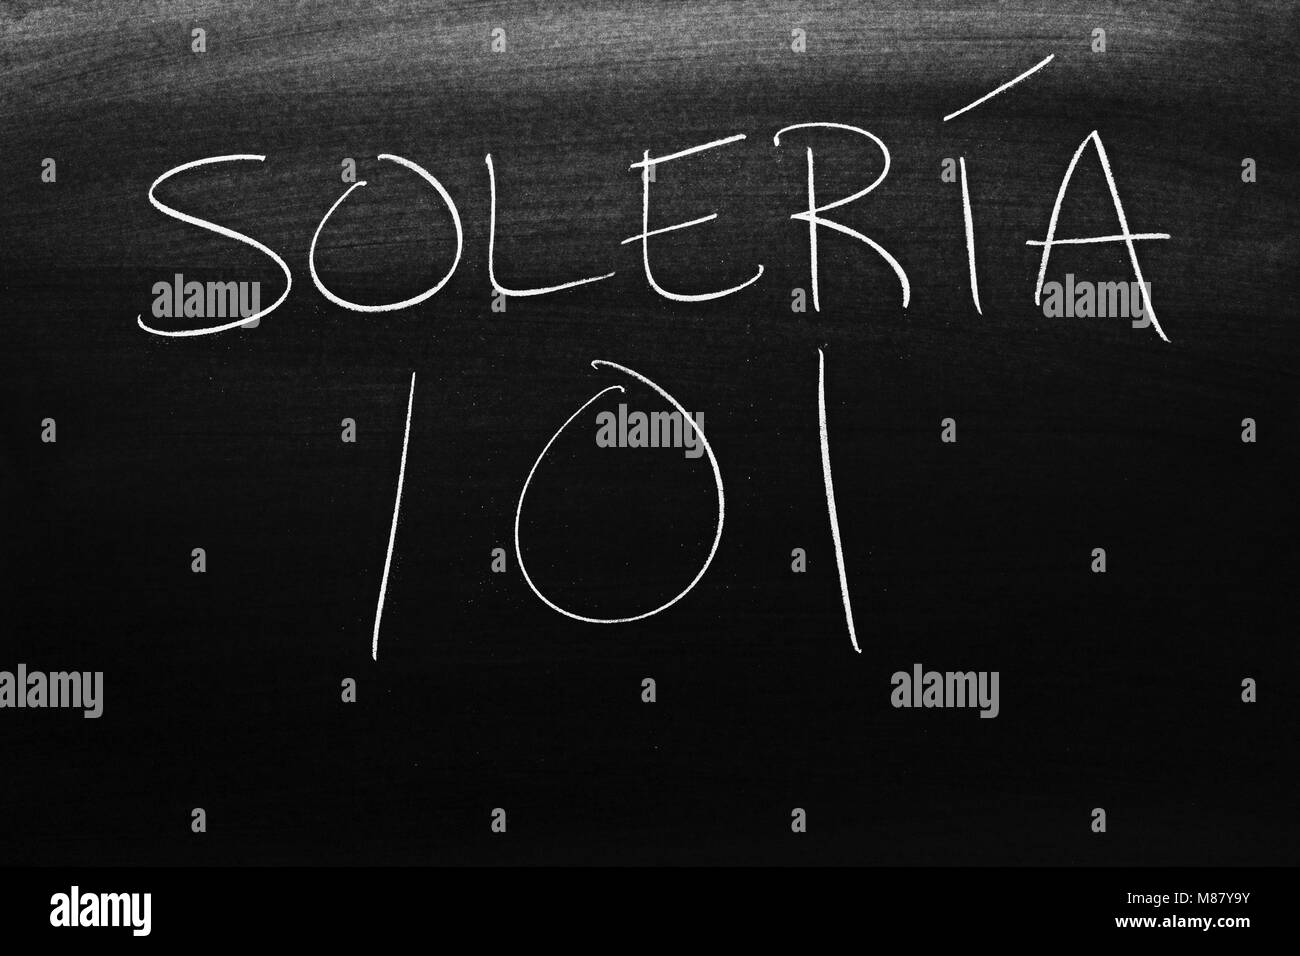 The words Solería 101 on a blackboard in chalk - Stock Image